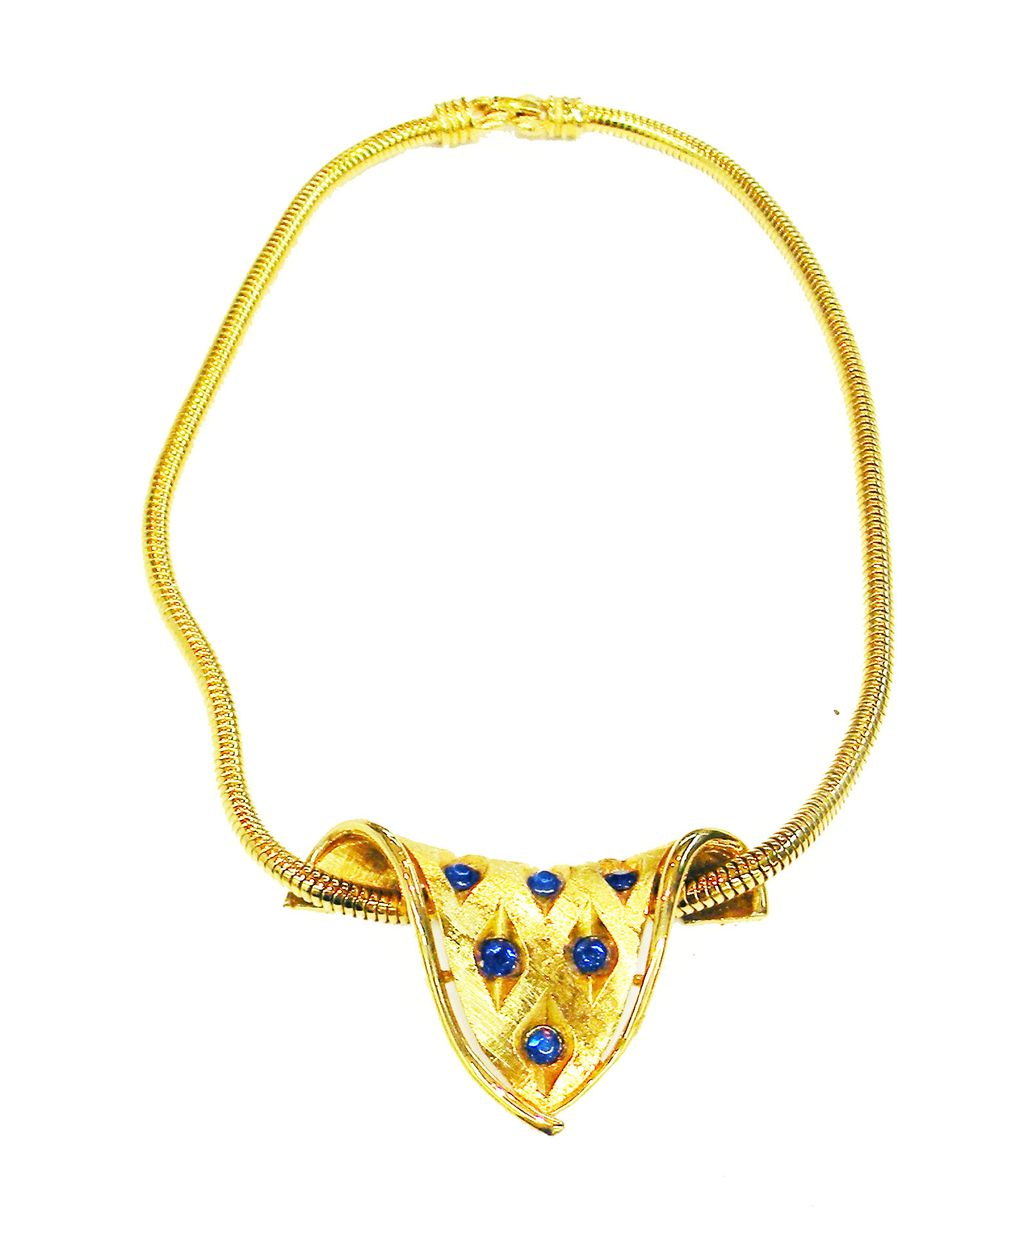 D'ORLAN Blue Rhinestone and Gold Tone Metal Sculptured Necklace